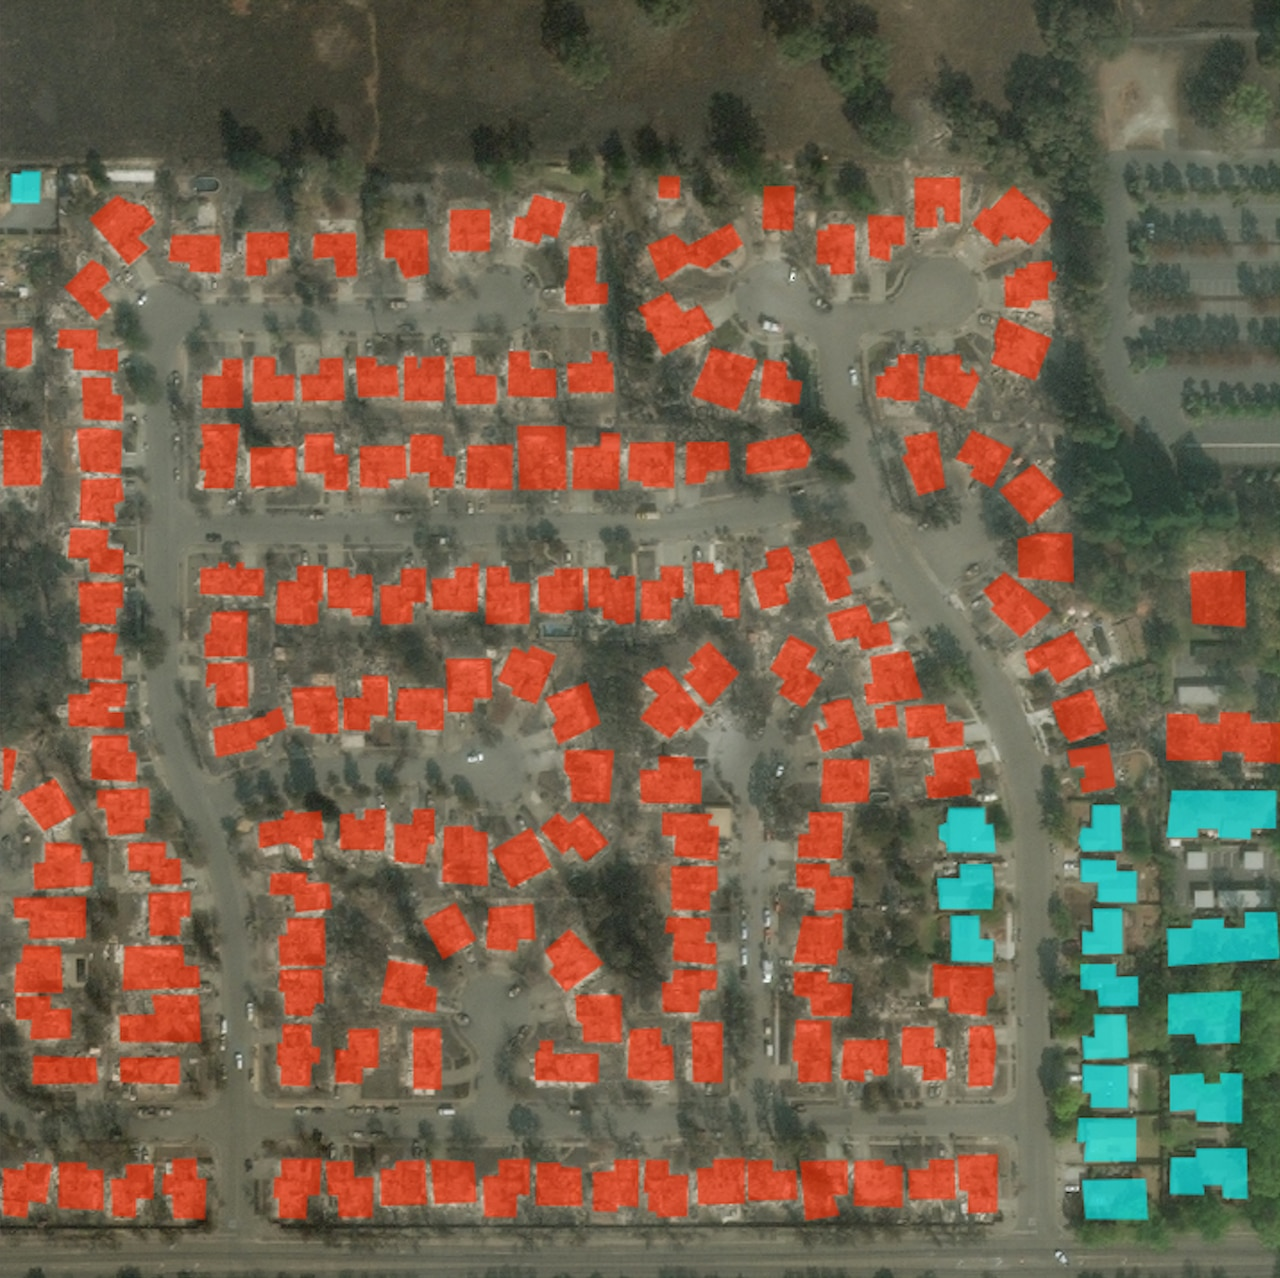 Satellite photo of a residential subdivision with red and blue rectangles marking damaged and undamaged homes, respectively.